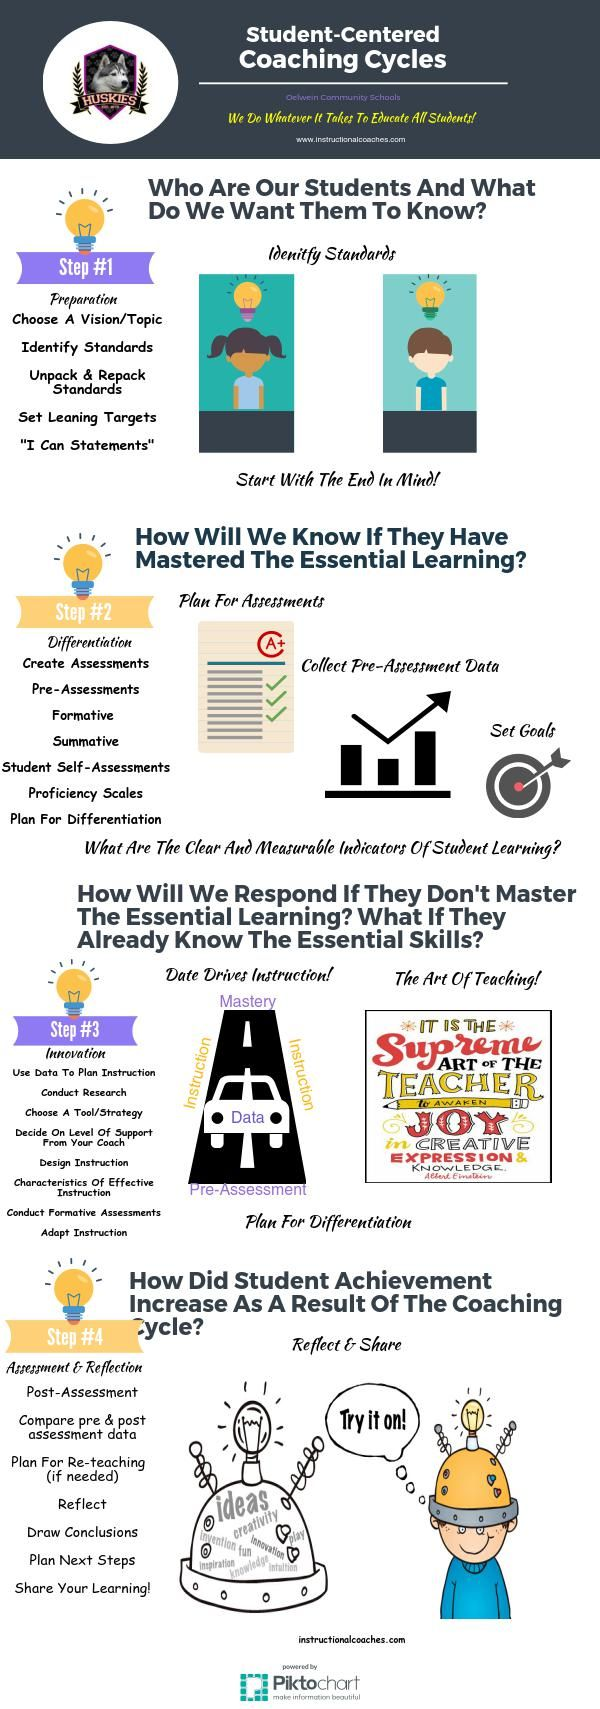 Student Centered Coaching Cycles Piktochart Infographic Instructional Coaching Student Center Coaching